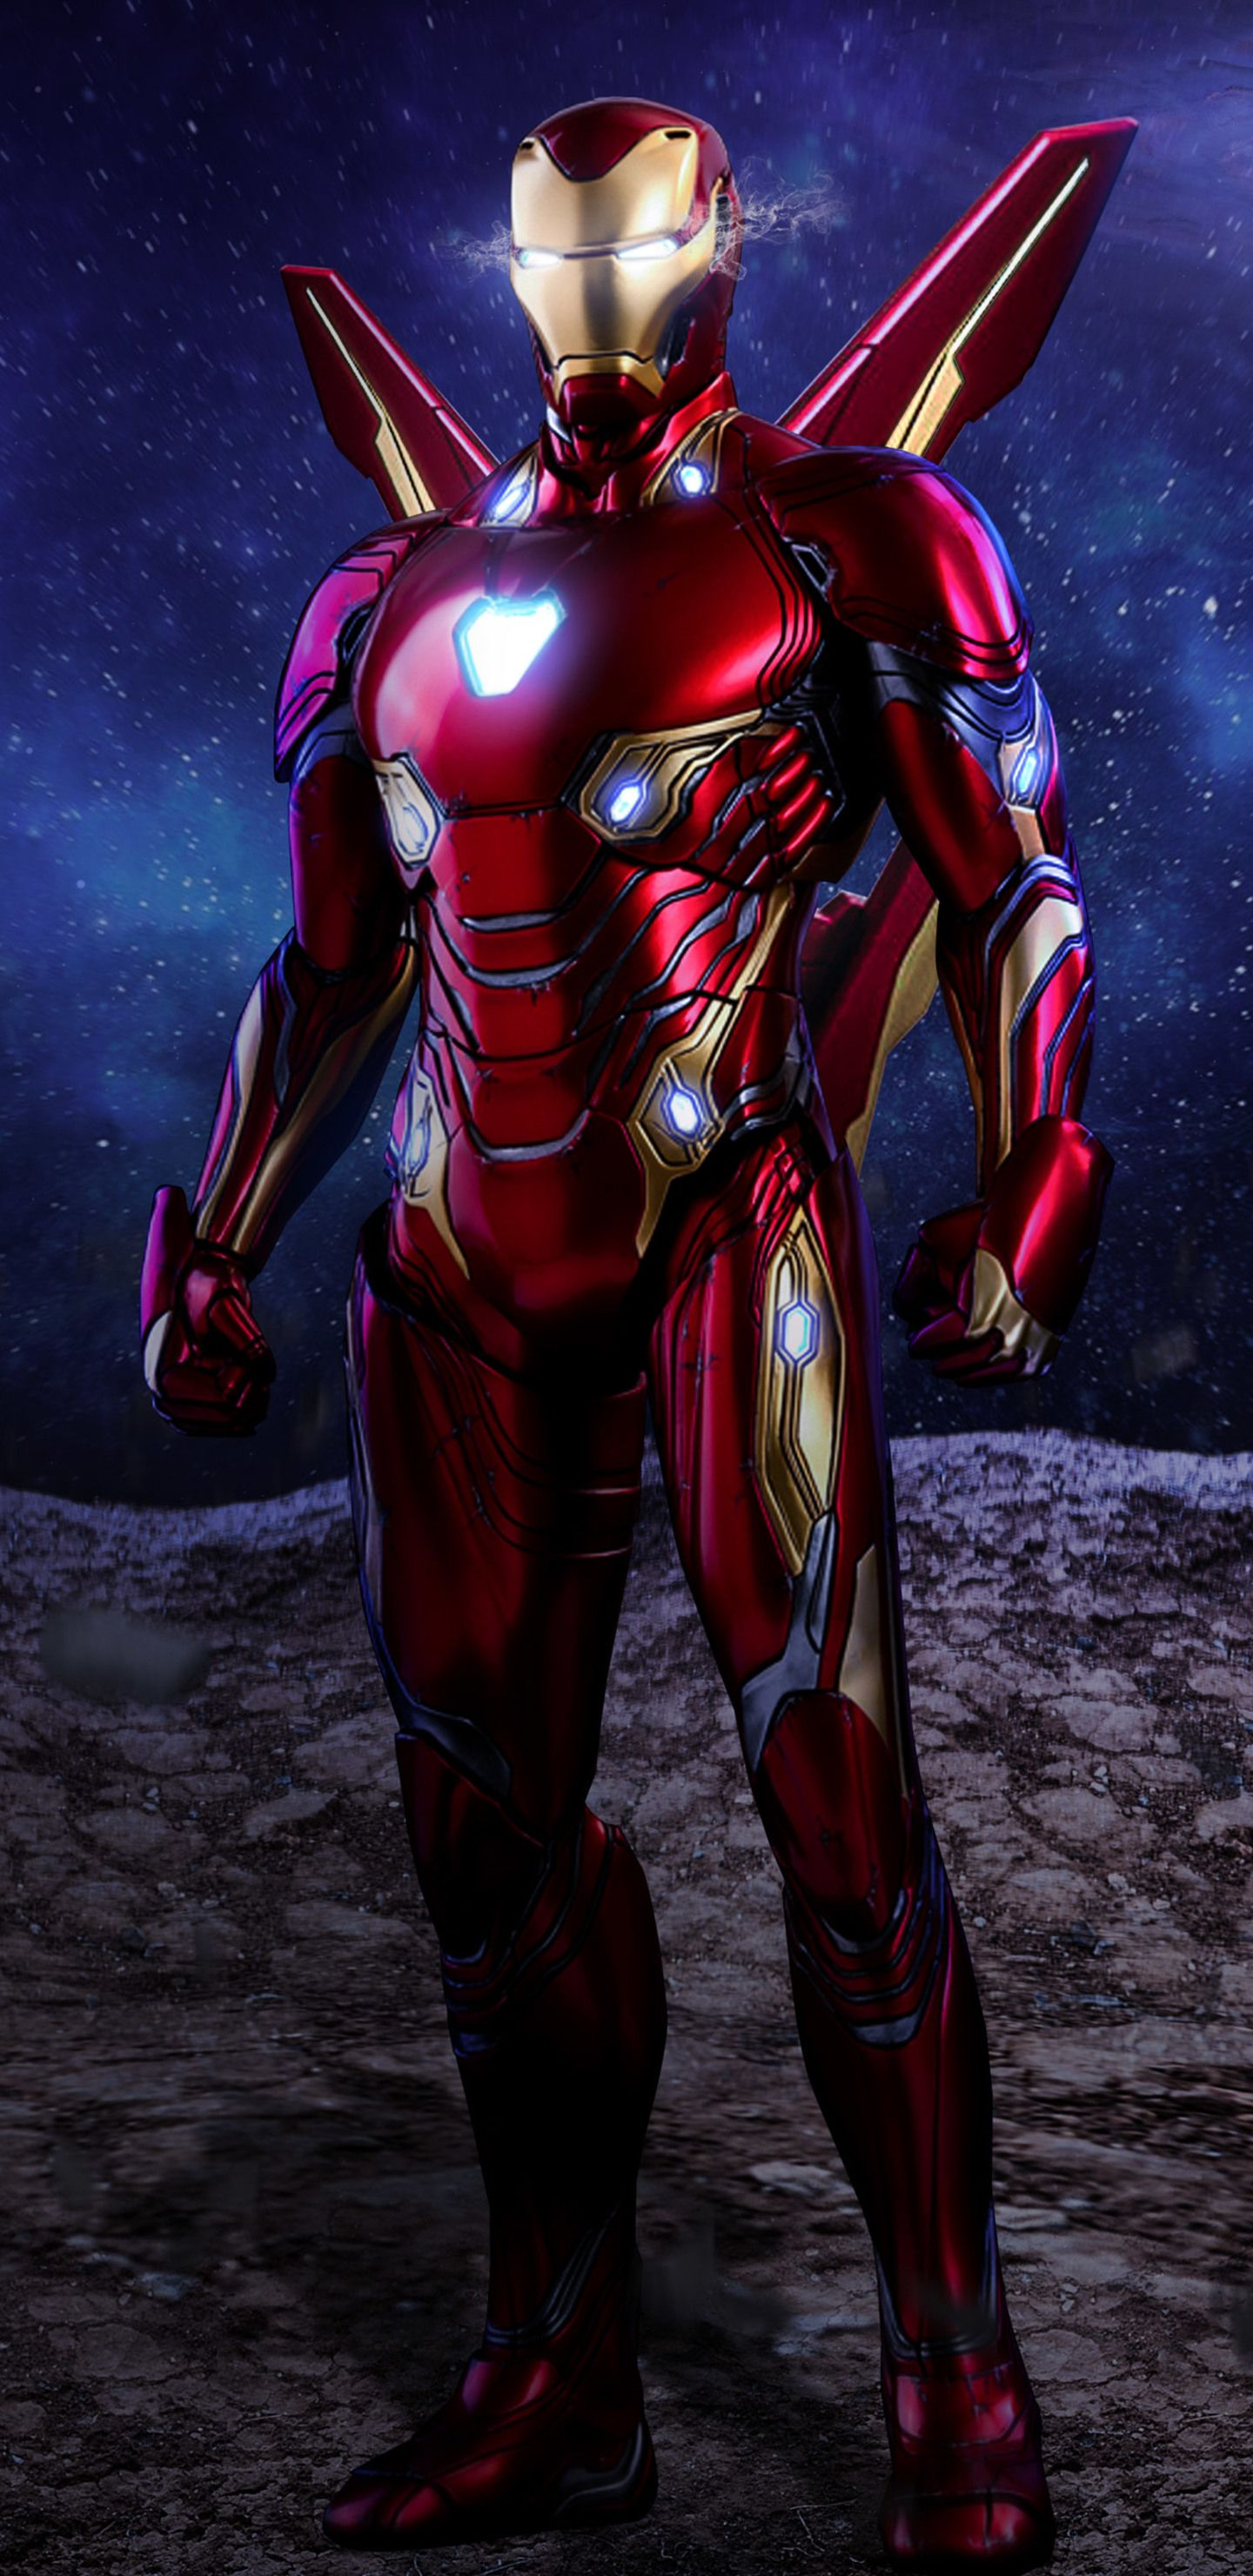 1440x2960 Iron Man Avengers Infinity War Suit Artwork Samsung